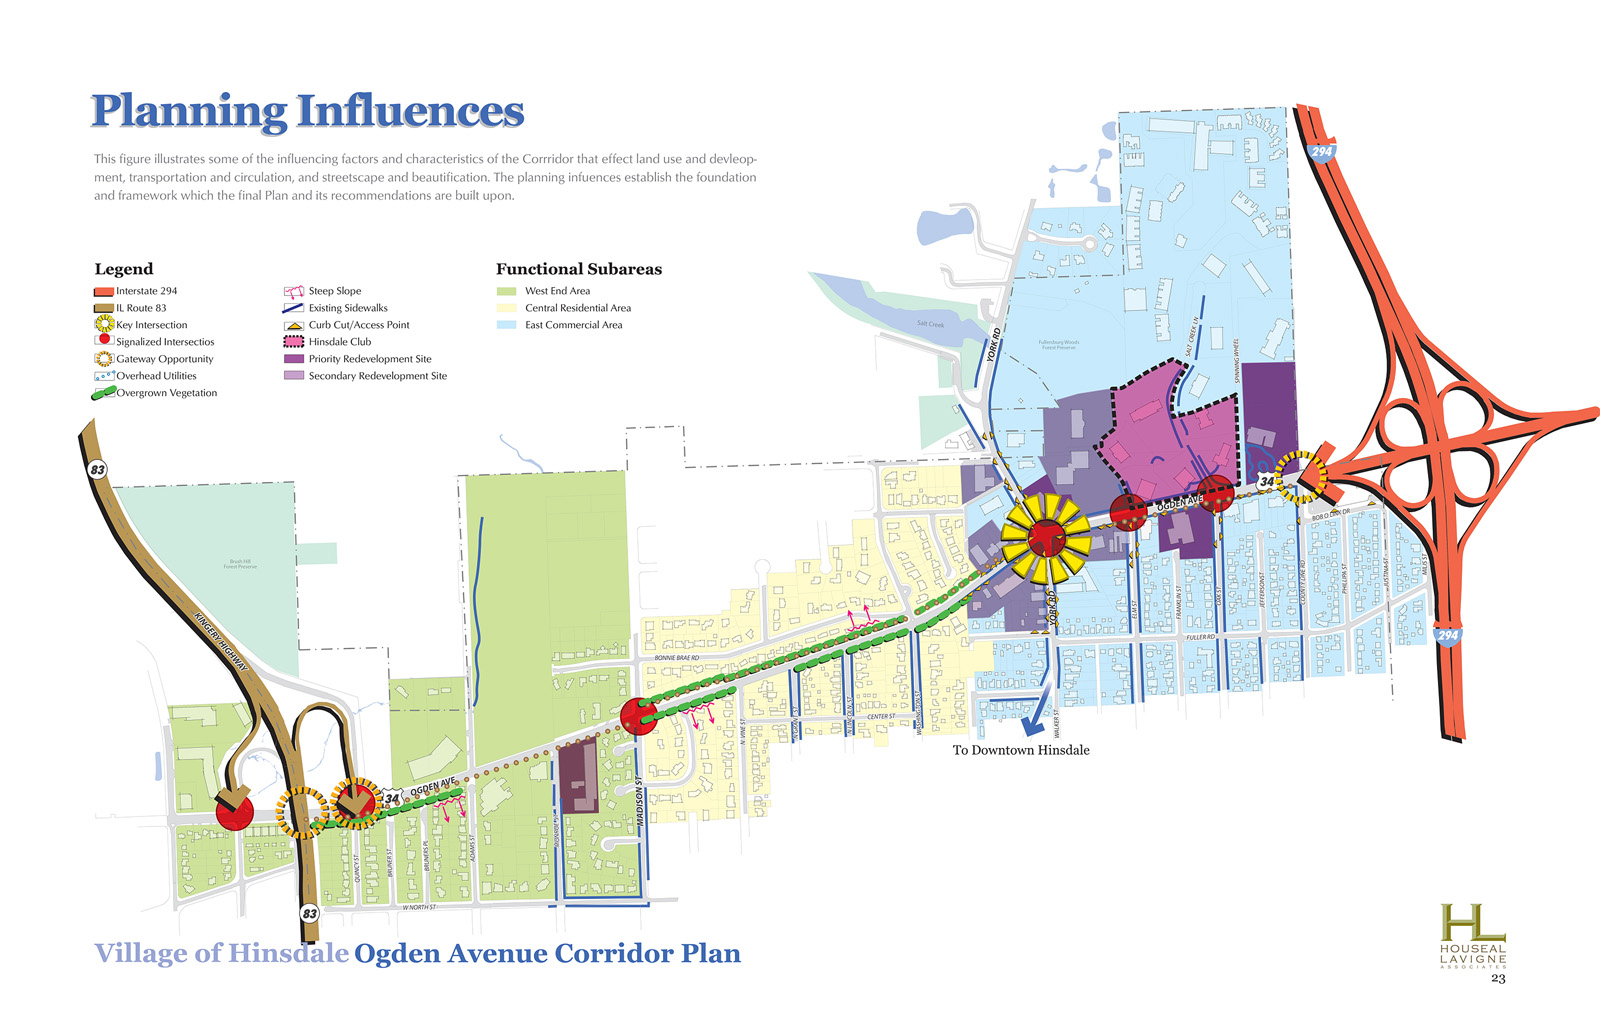 Village of Hinsdale Ogden Avenue Corridor Plan